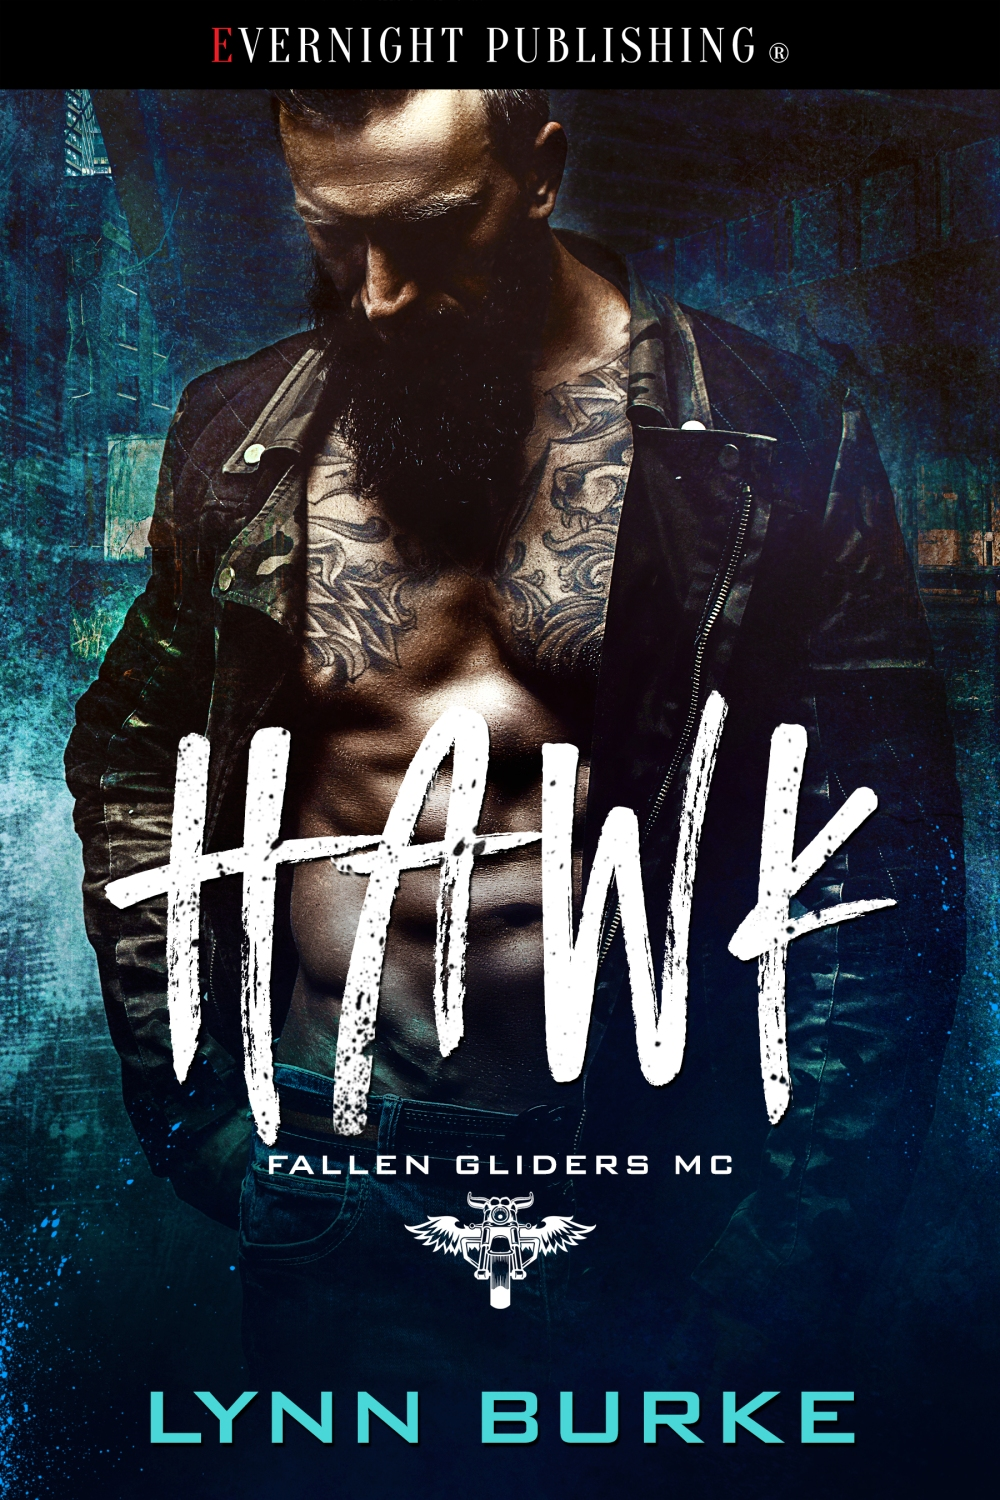 hawk-evernightpublishing-2018-eBook-complete.jpg